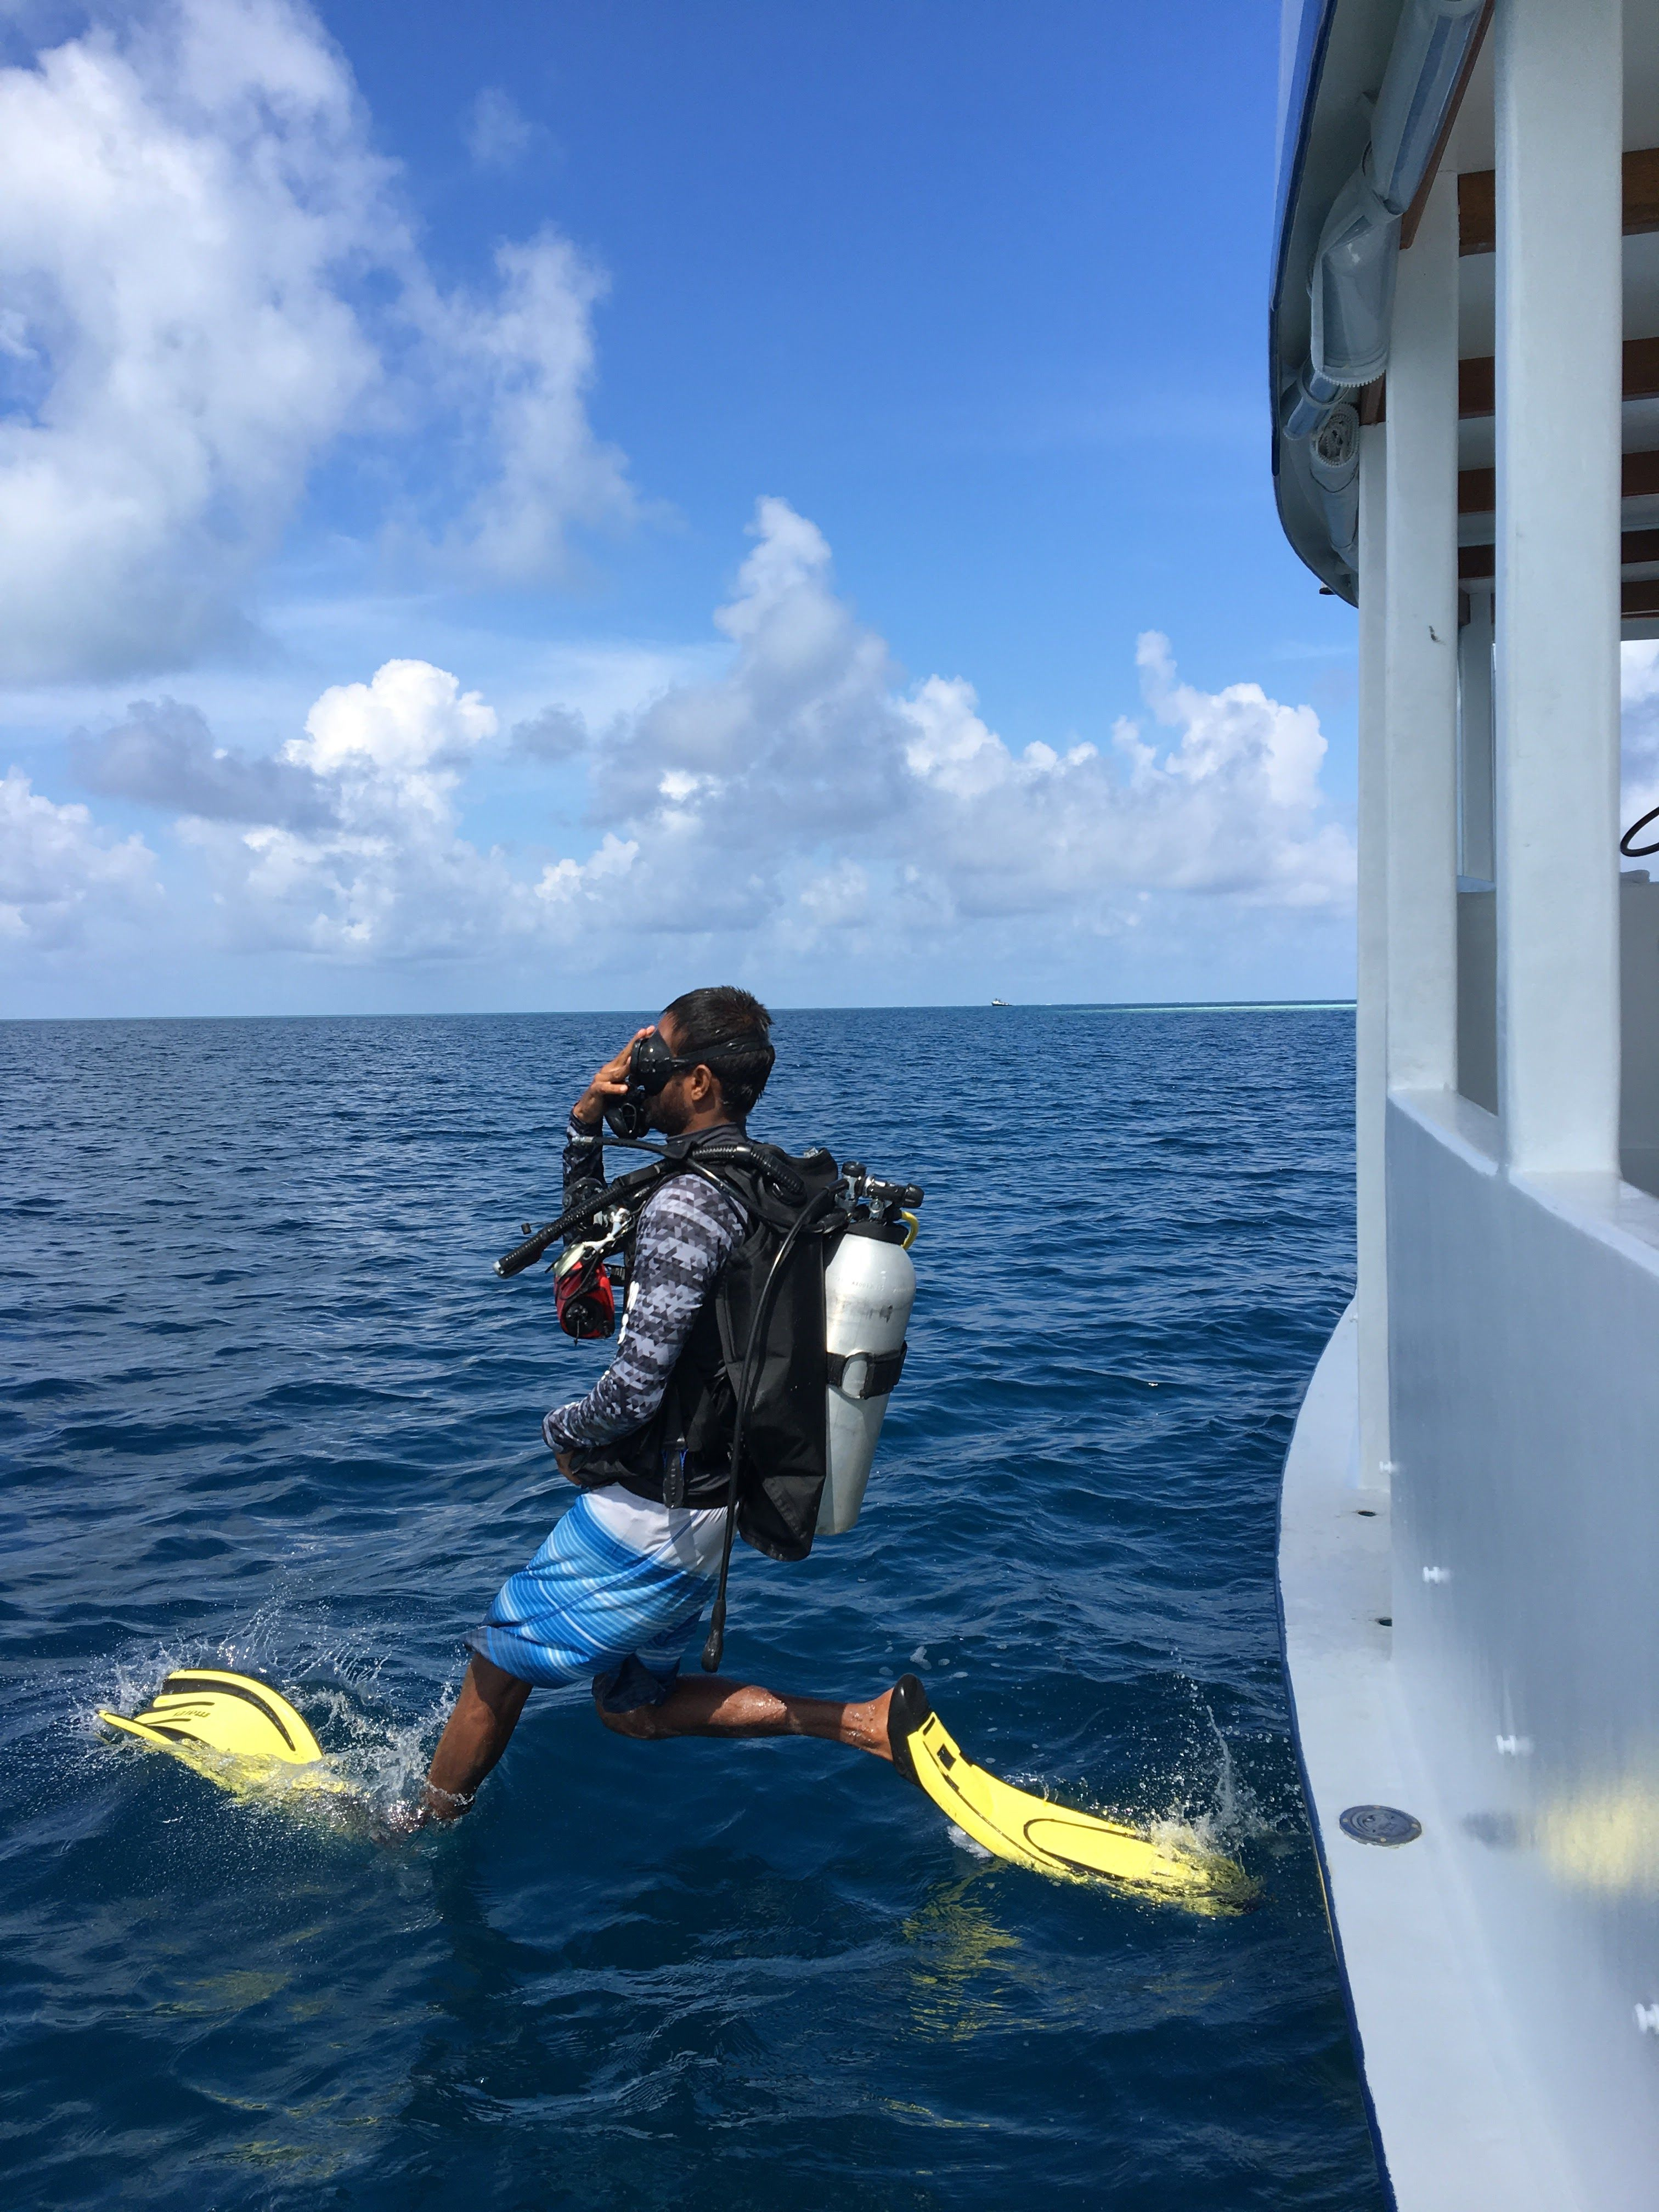 Base leader Ali Miuraj demostrating a giant leap entry! #Fulidhoo Dive #Maldives